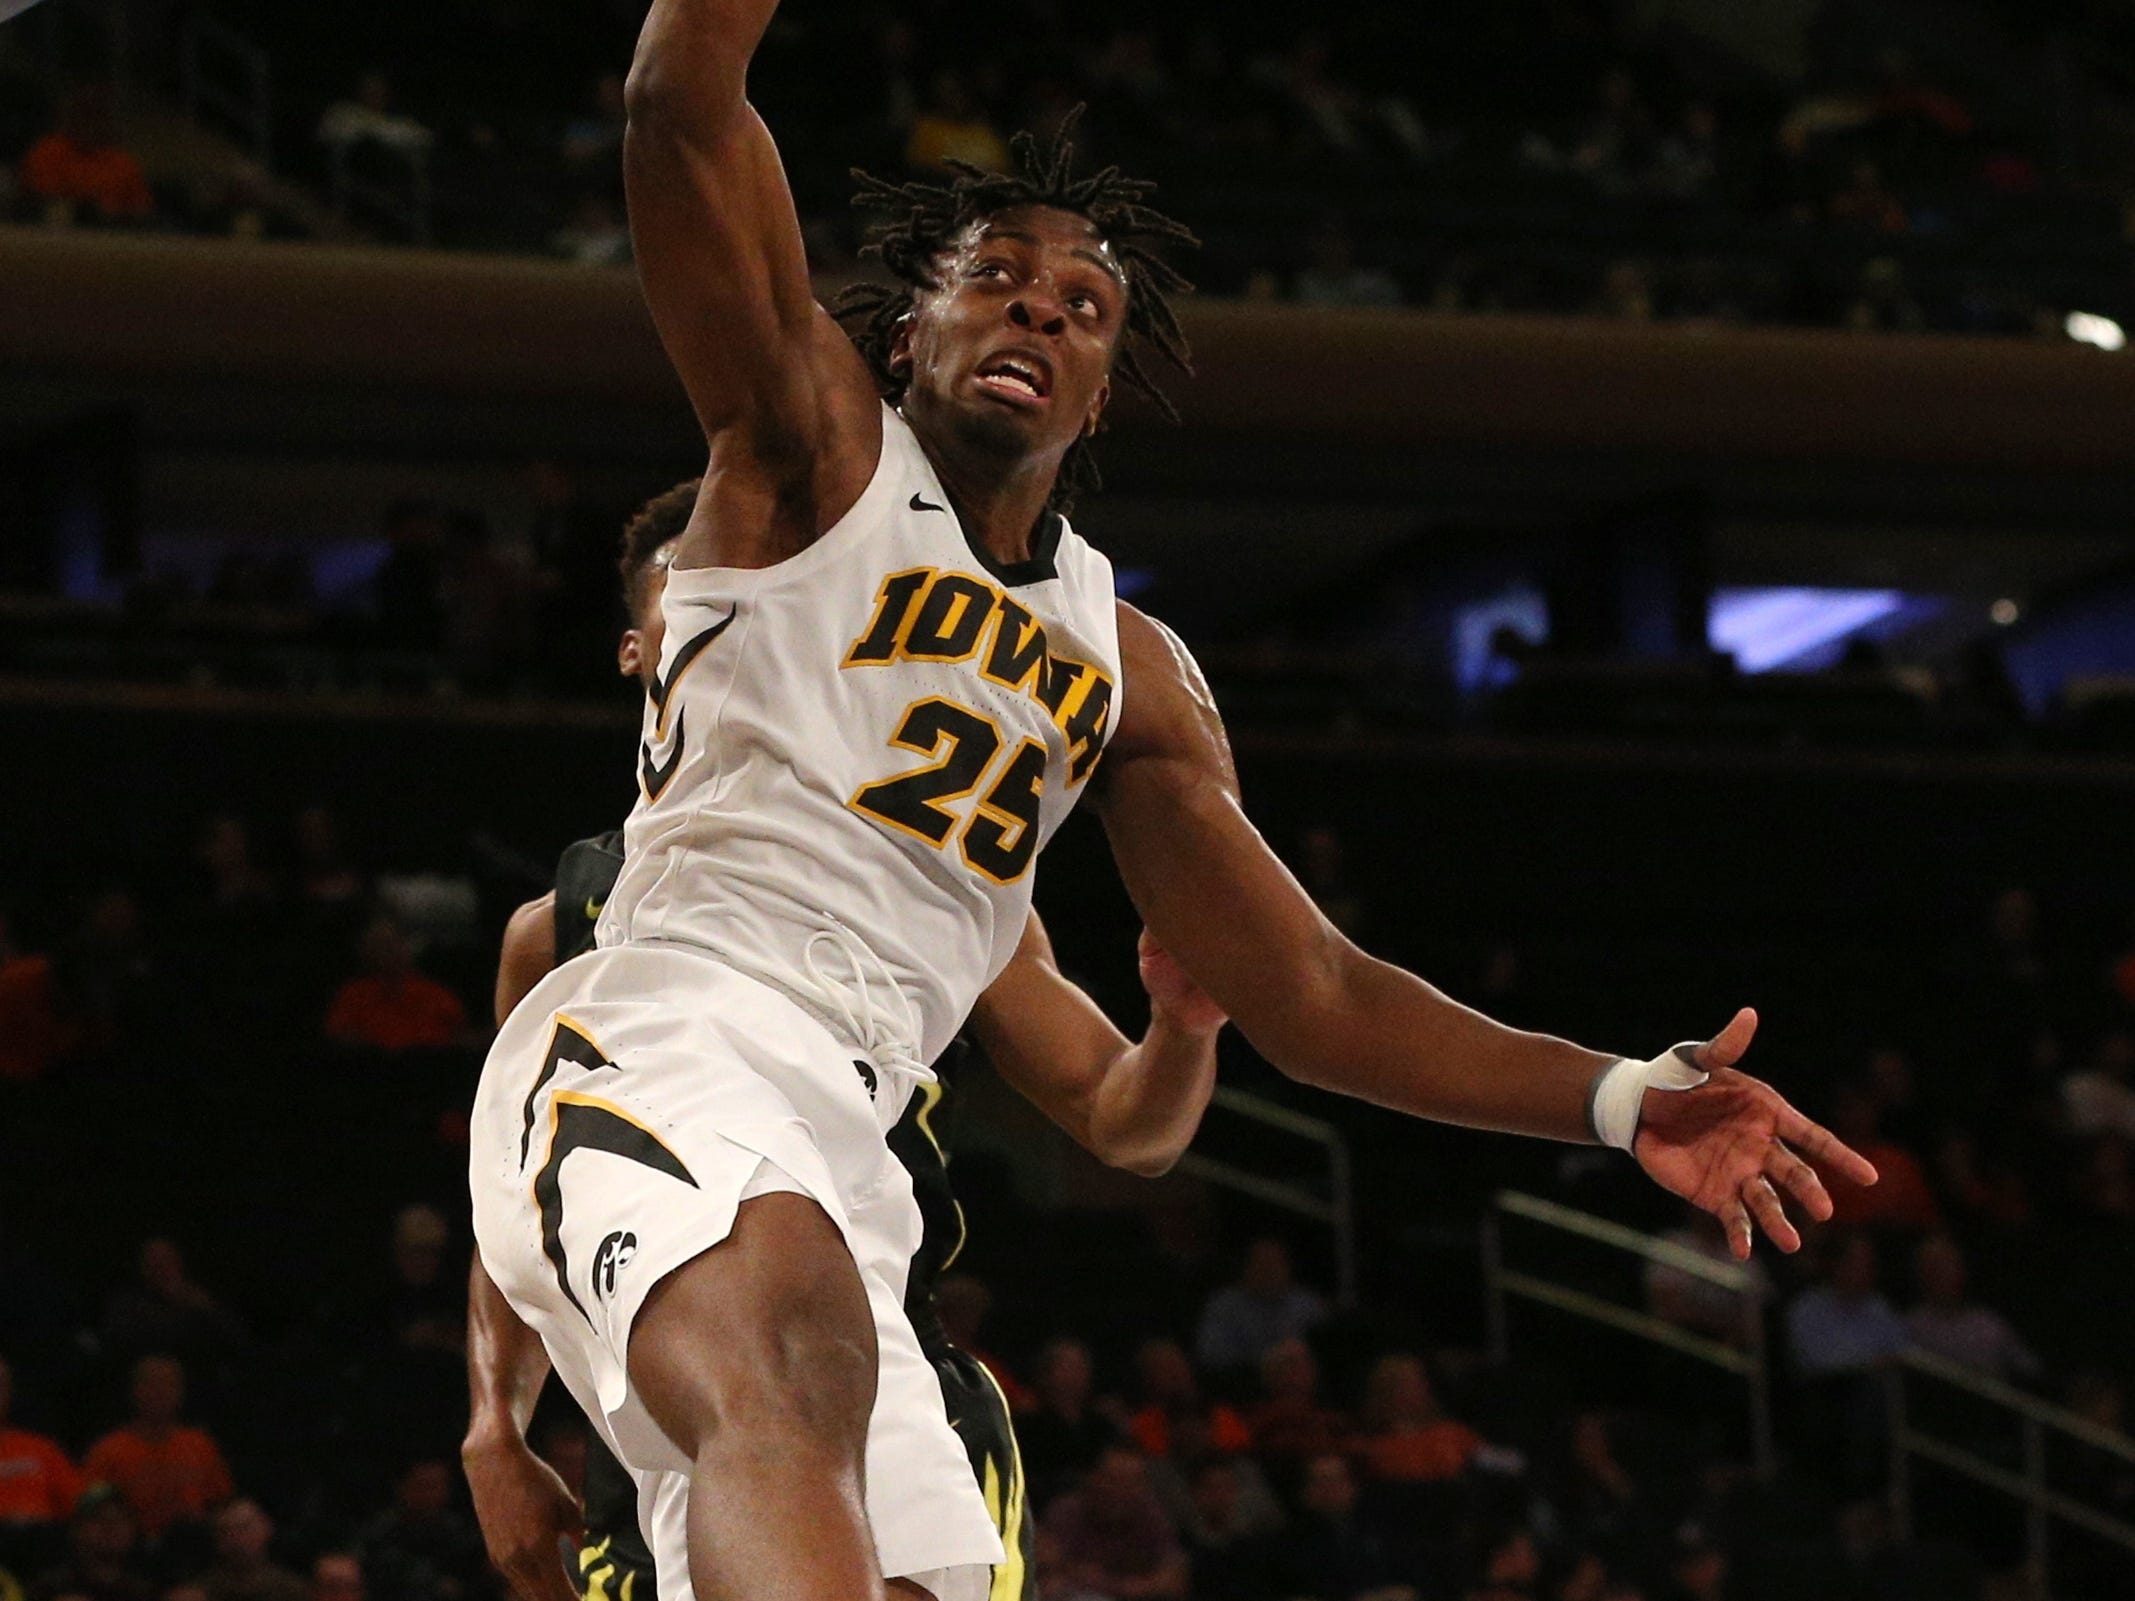 Nov 15, 2018; New York, NY, USA; Iowa Hawkeyes forward Tyler Cook (25) dunks against the Oregon Ducks during the first half at Madison Square Garden.